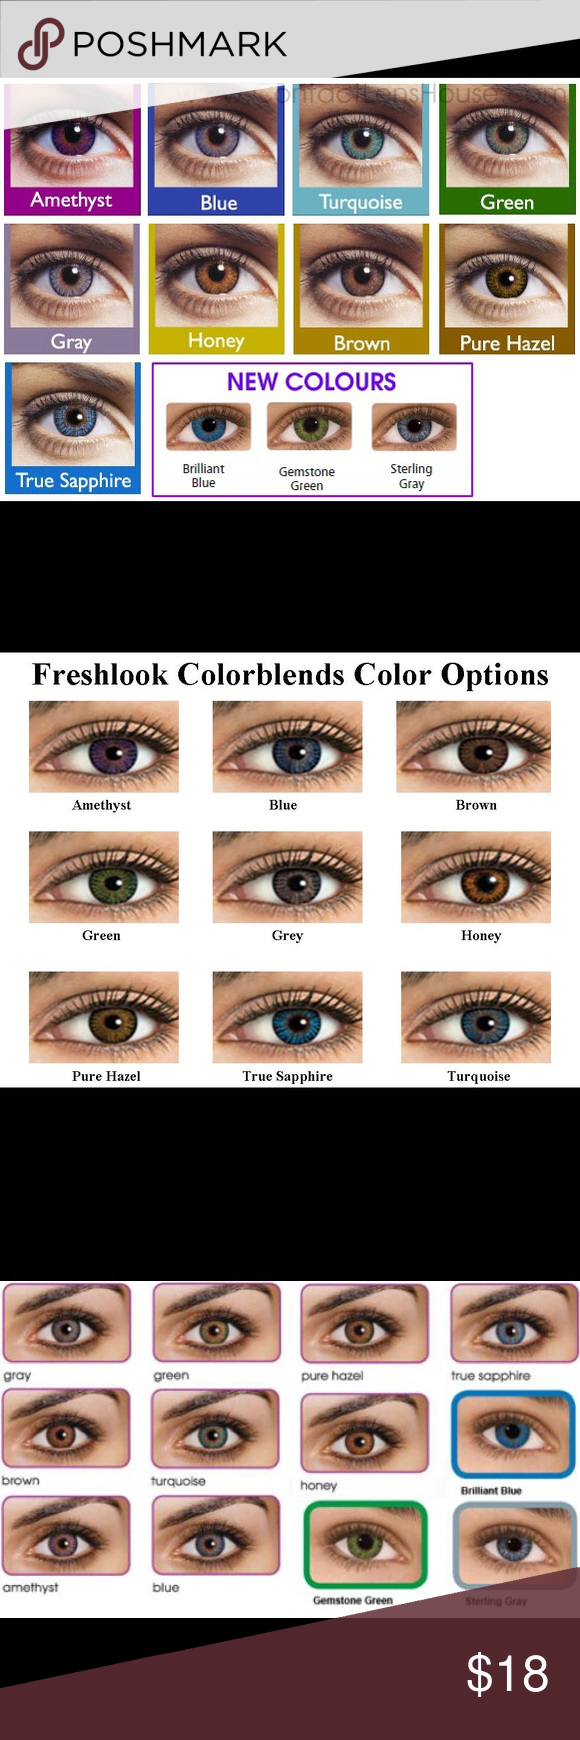 2 Pair Freshlook Colorblend Contacts 12 Colors 1 Pair Freshlooks